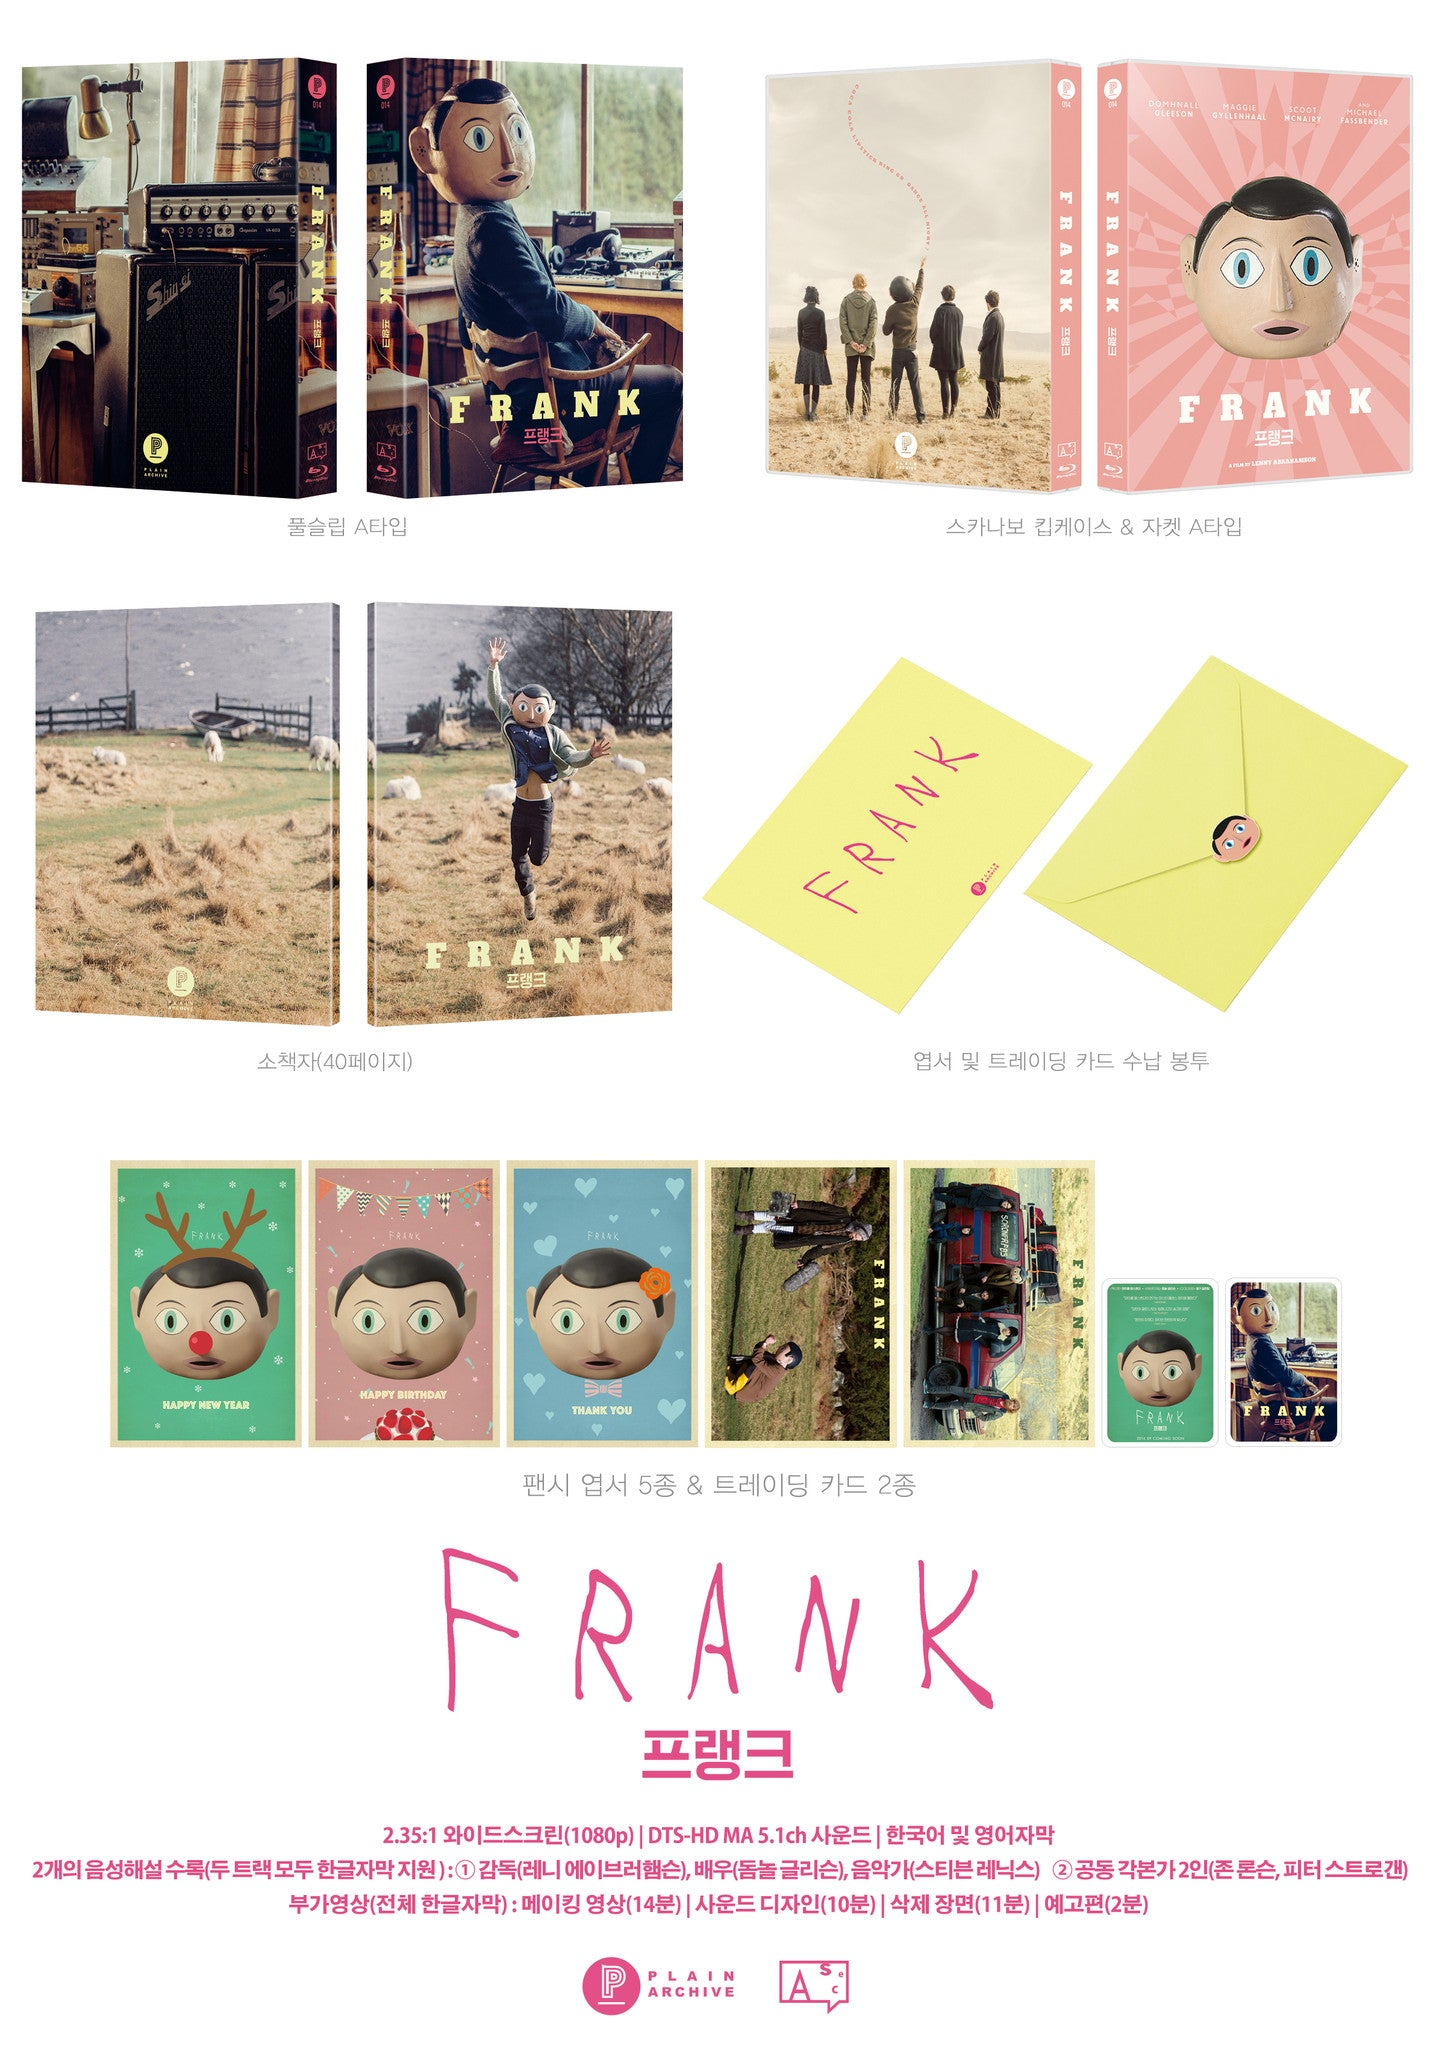 FRANK (Design A) : Full slip (PA014)